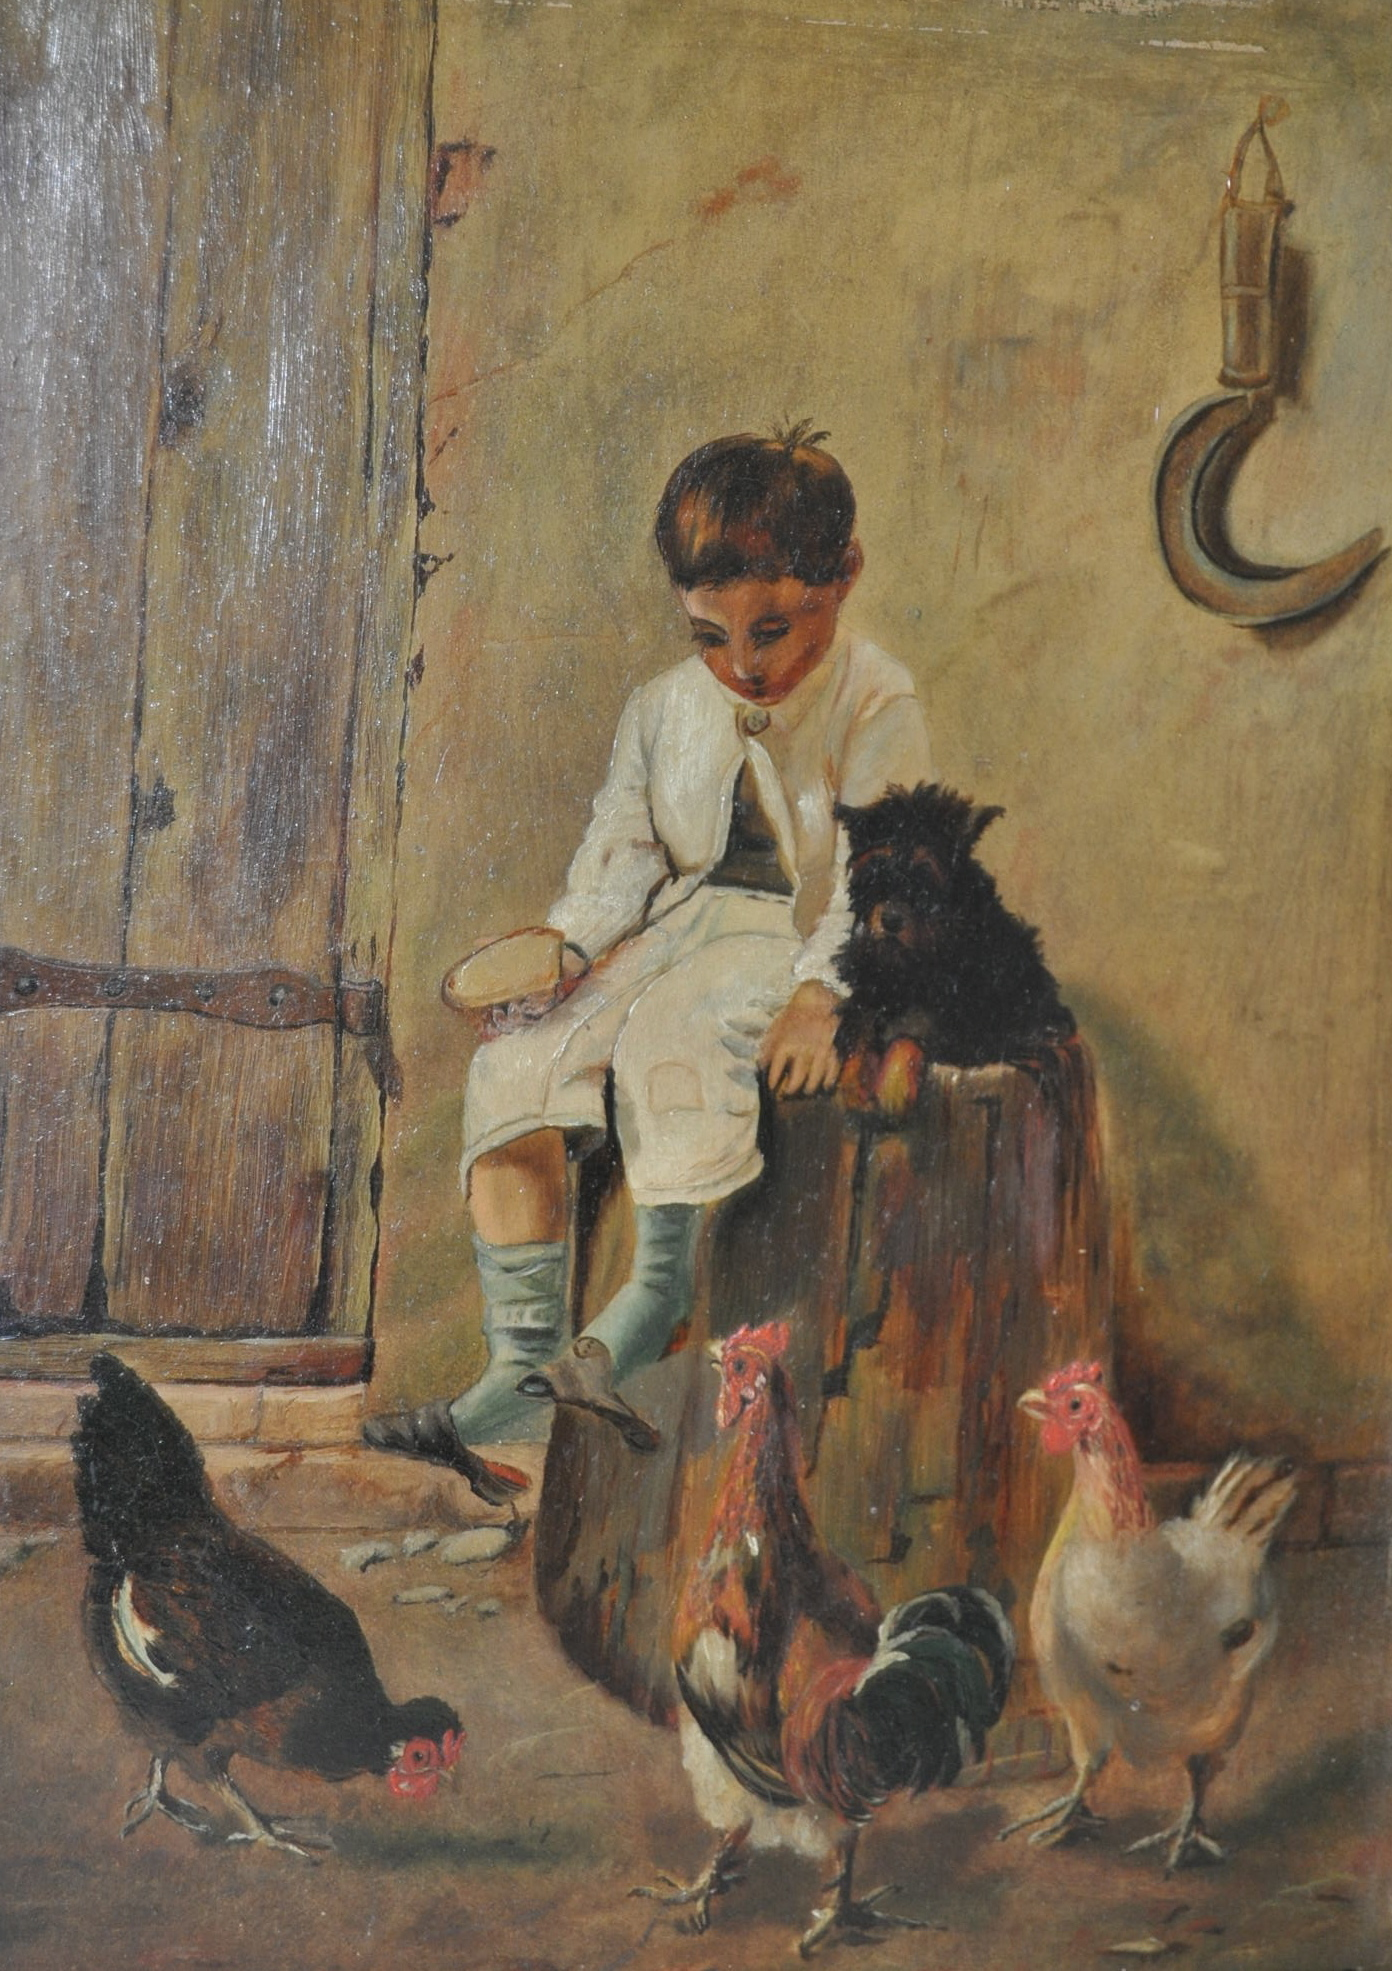 Fisherman boy antique 1870s oil painting by Louis Caradec